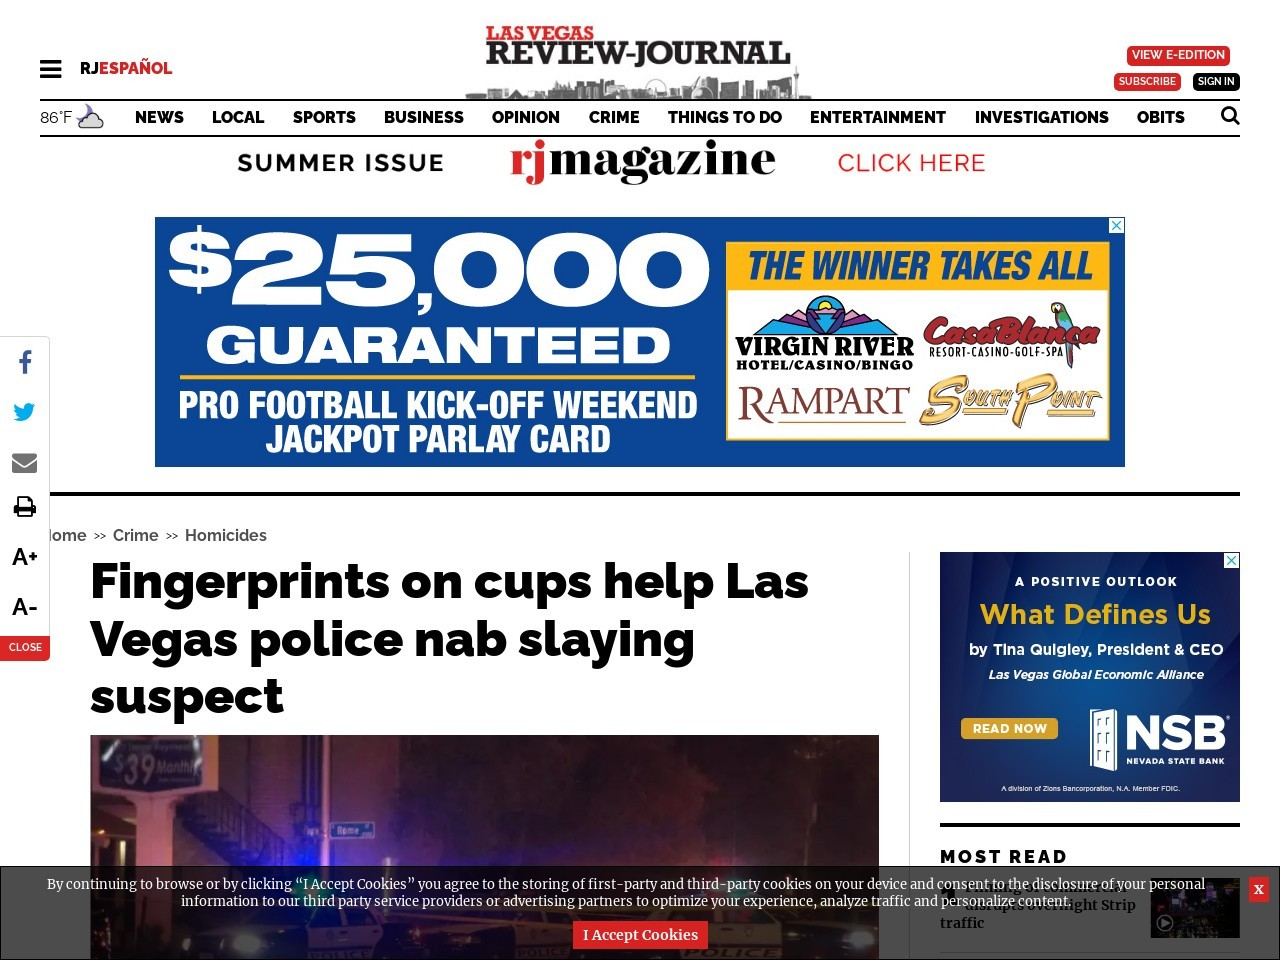 Fingerprints on cups lead Las Vegas police to slaying suspect